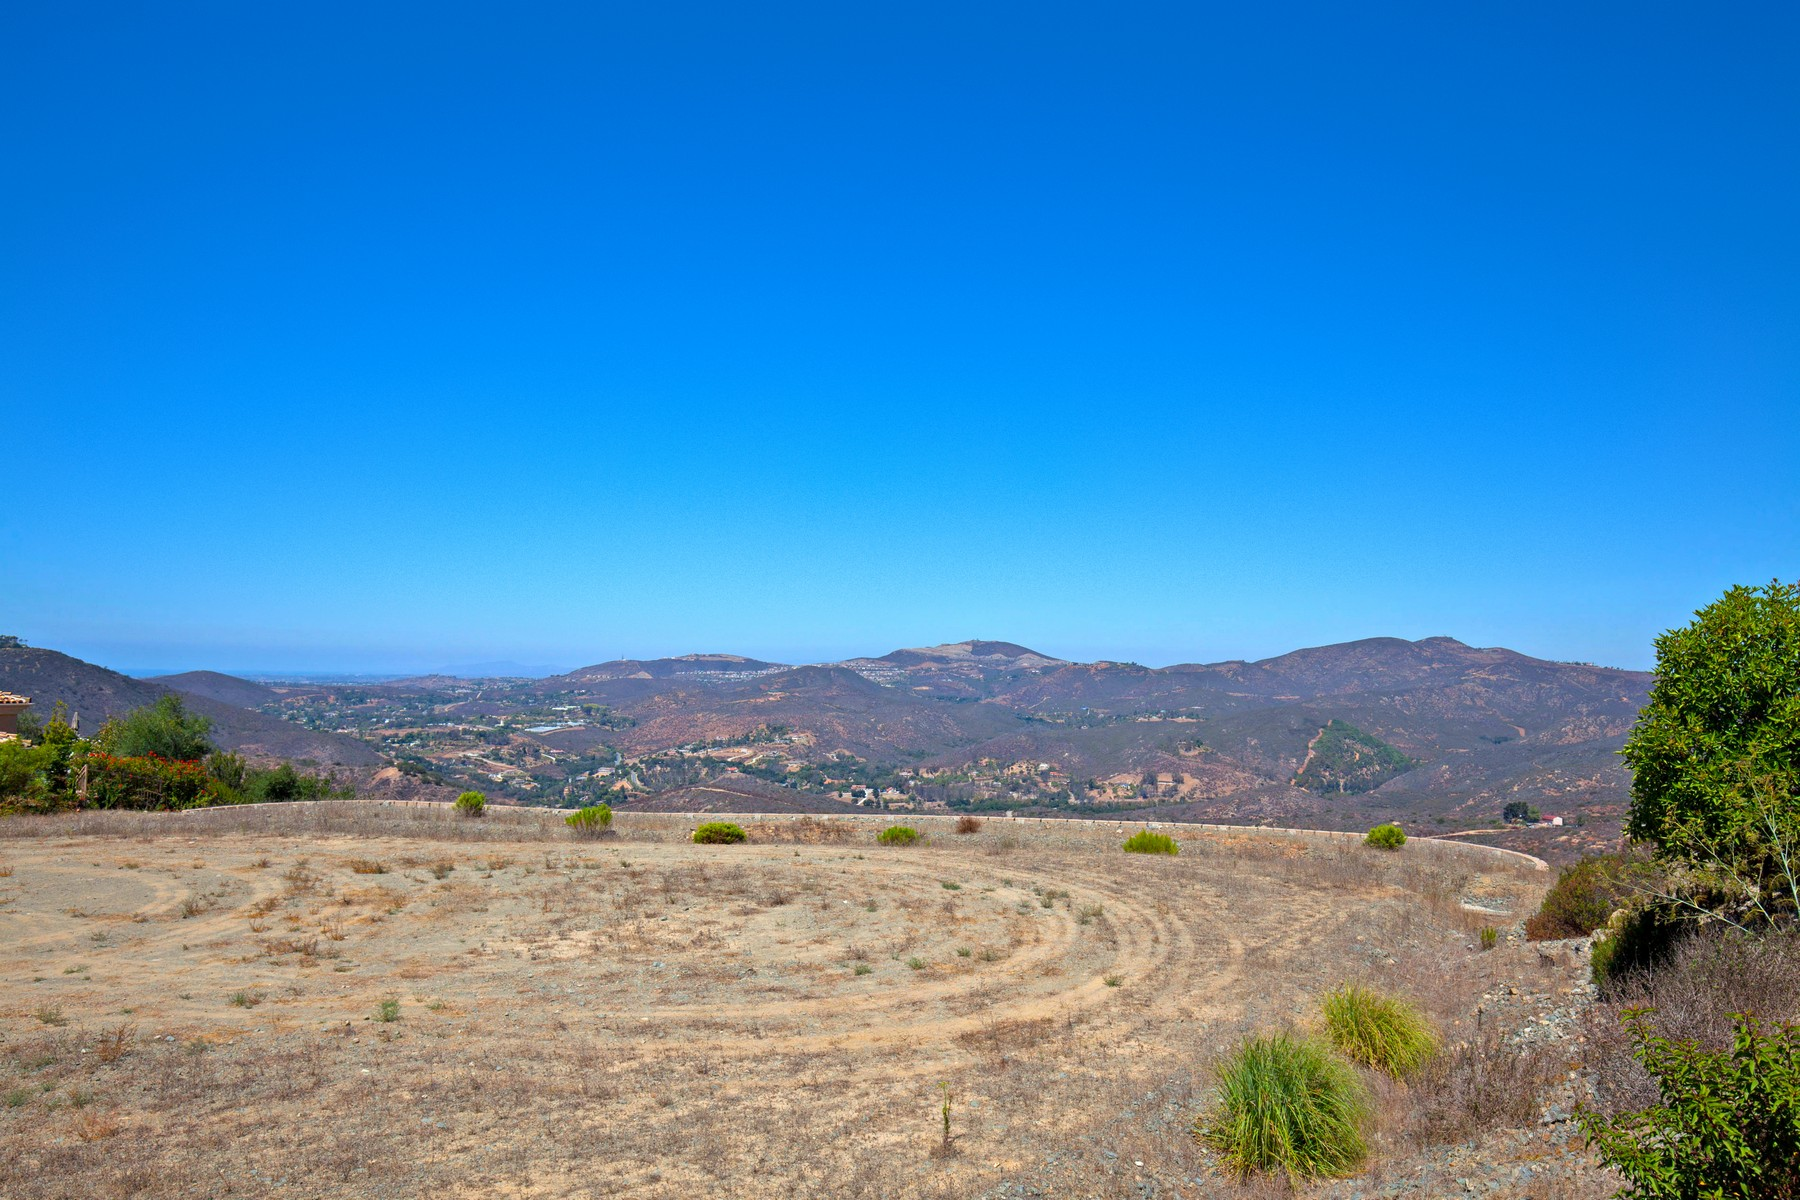 Land for Sale at Via Ambiente lot 15 Via Ambiente 15, Rancho Santa Fe, California, 92067 United States